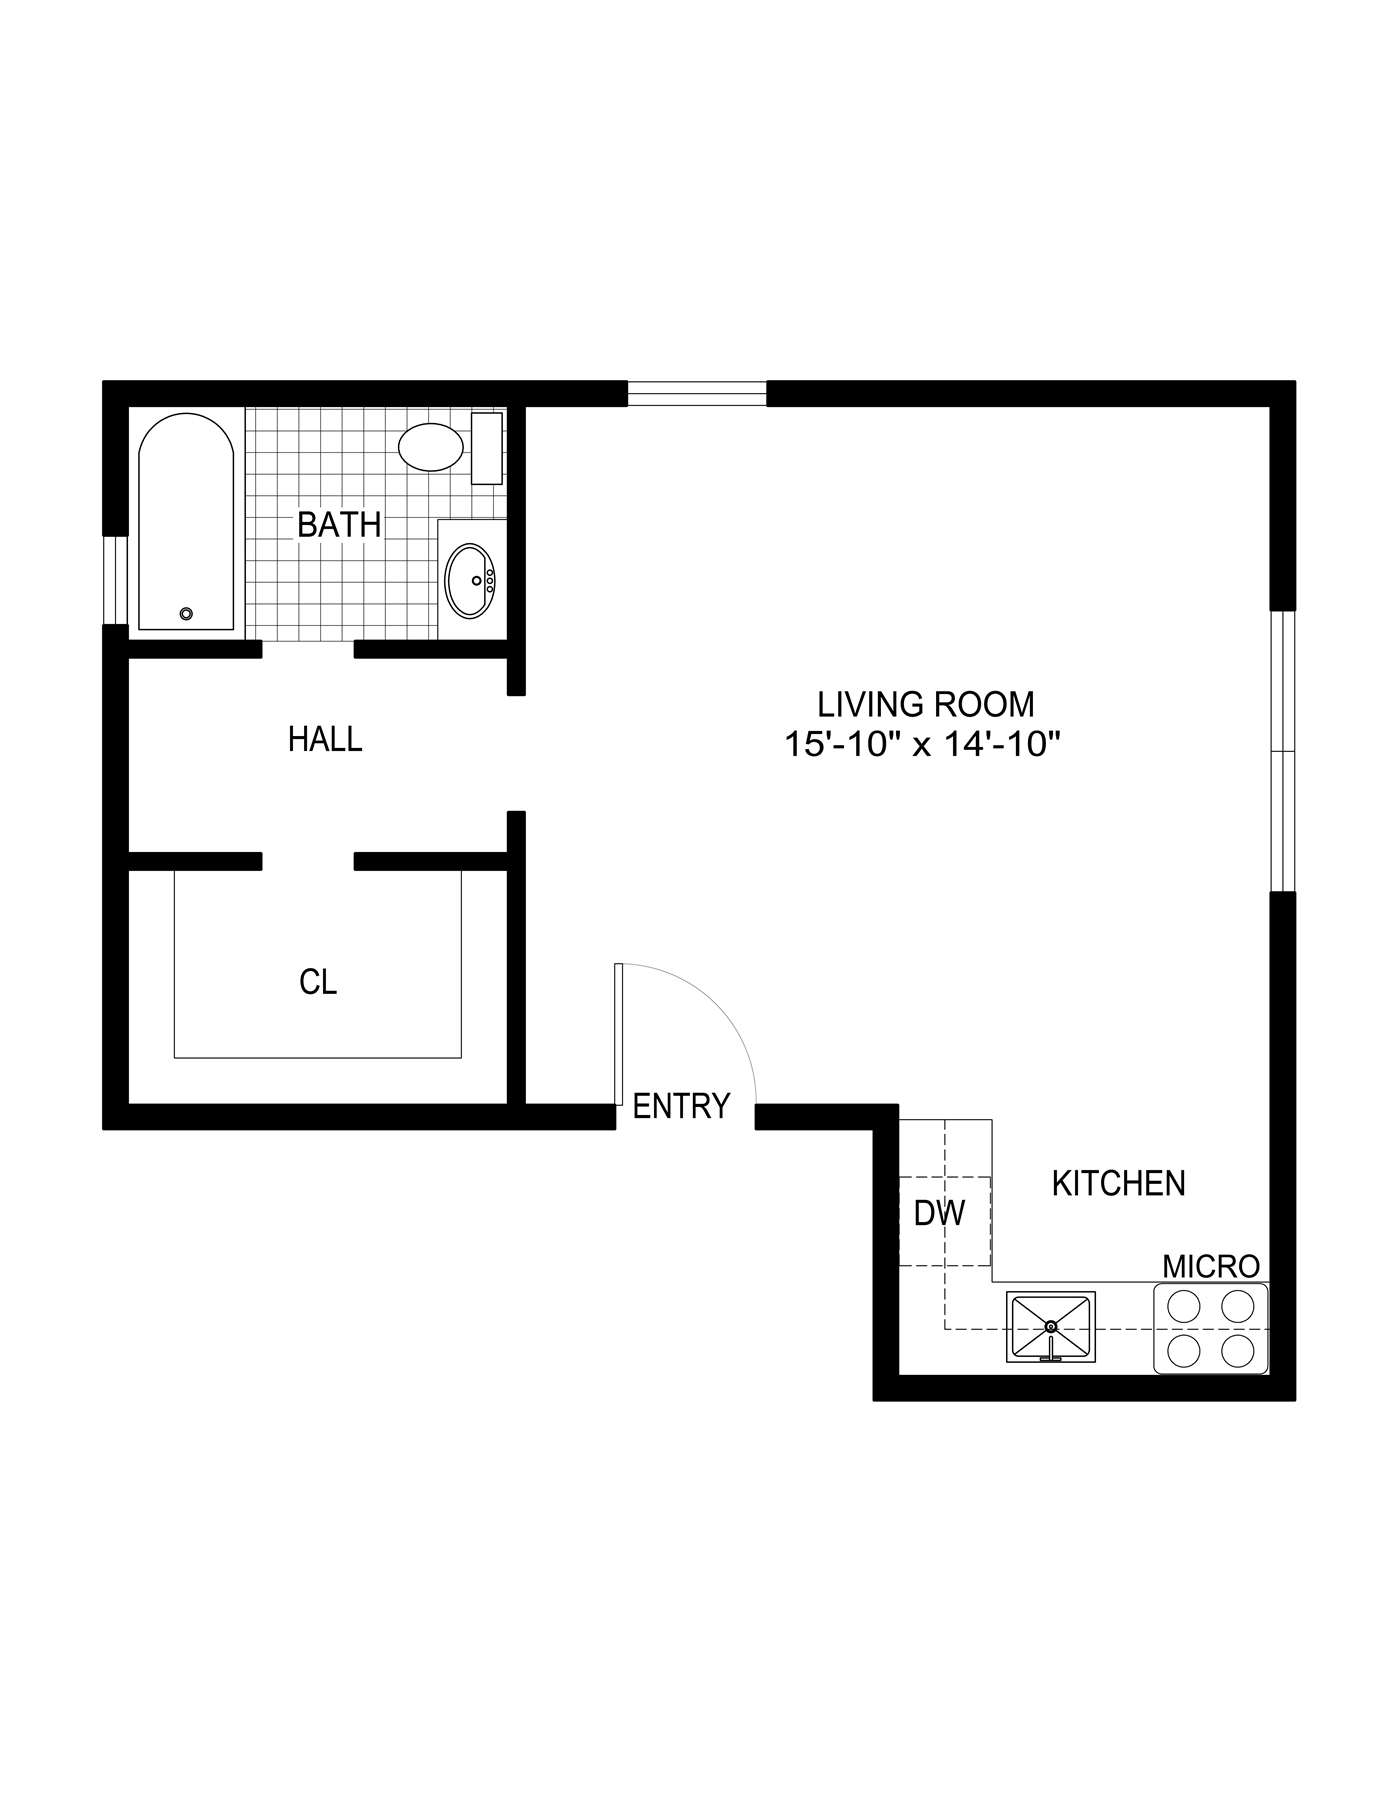 Diagram templates for office sh3 me for Floor plan layout template